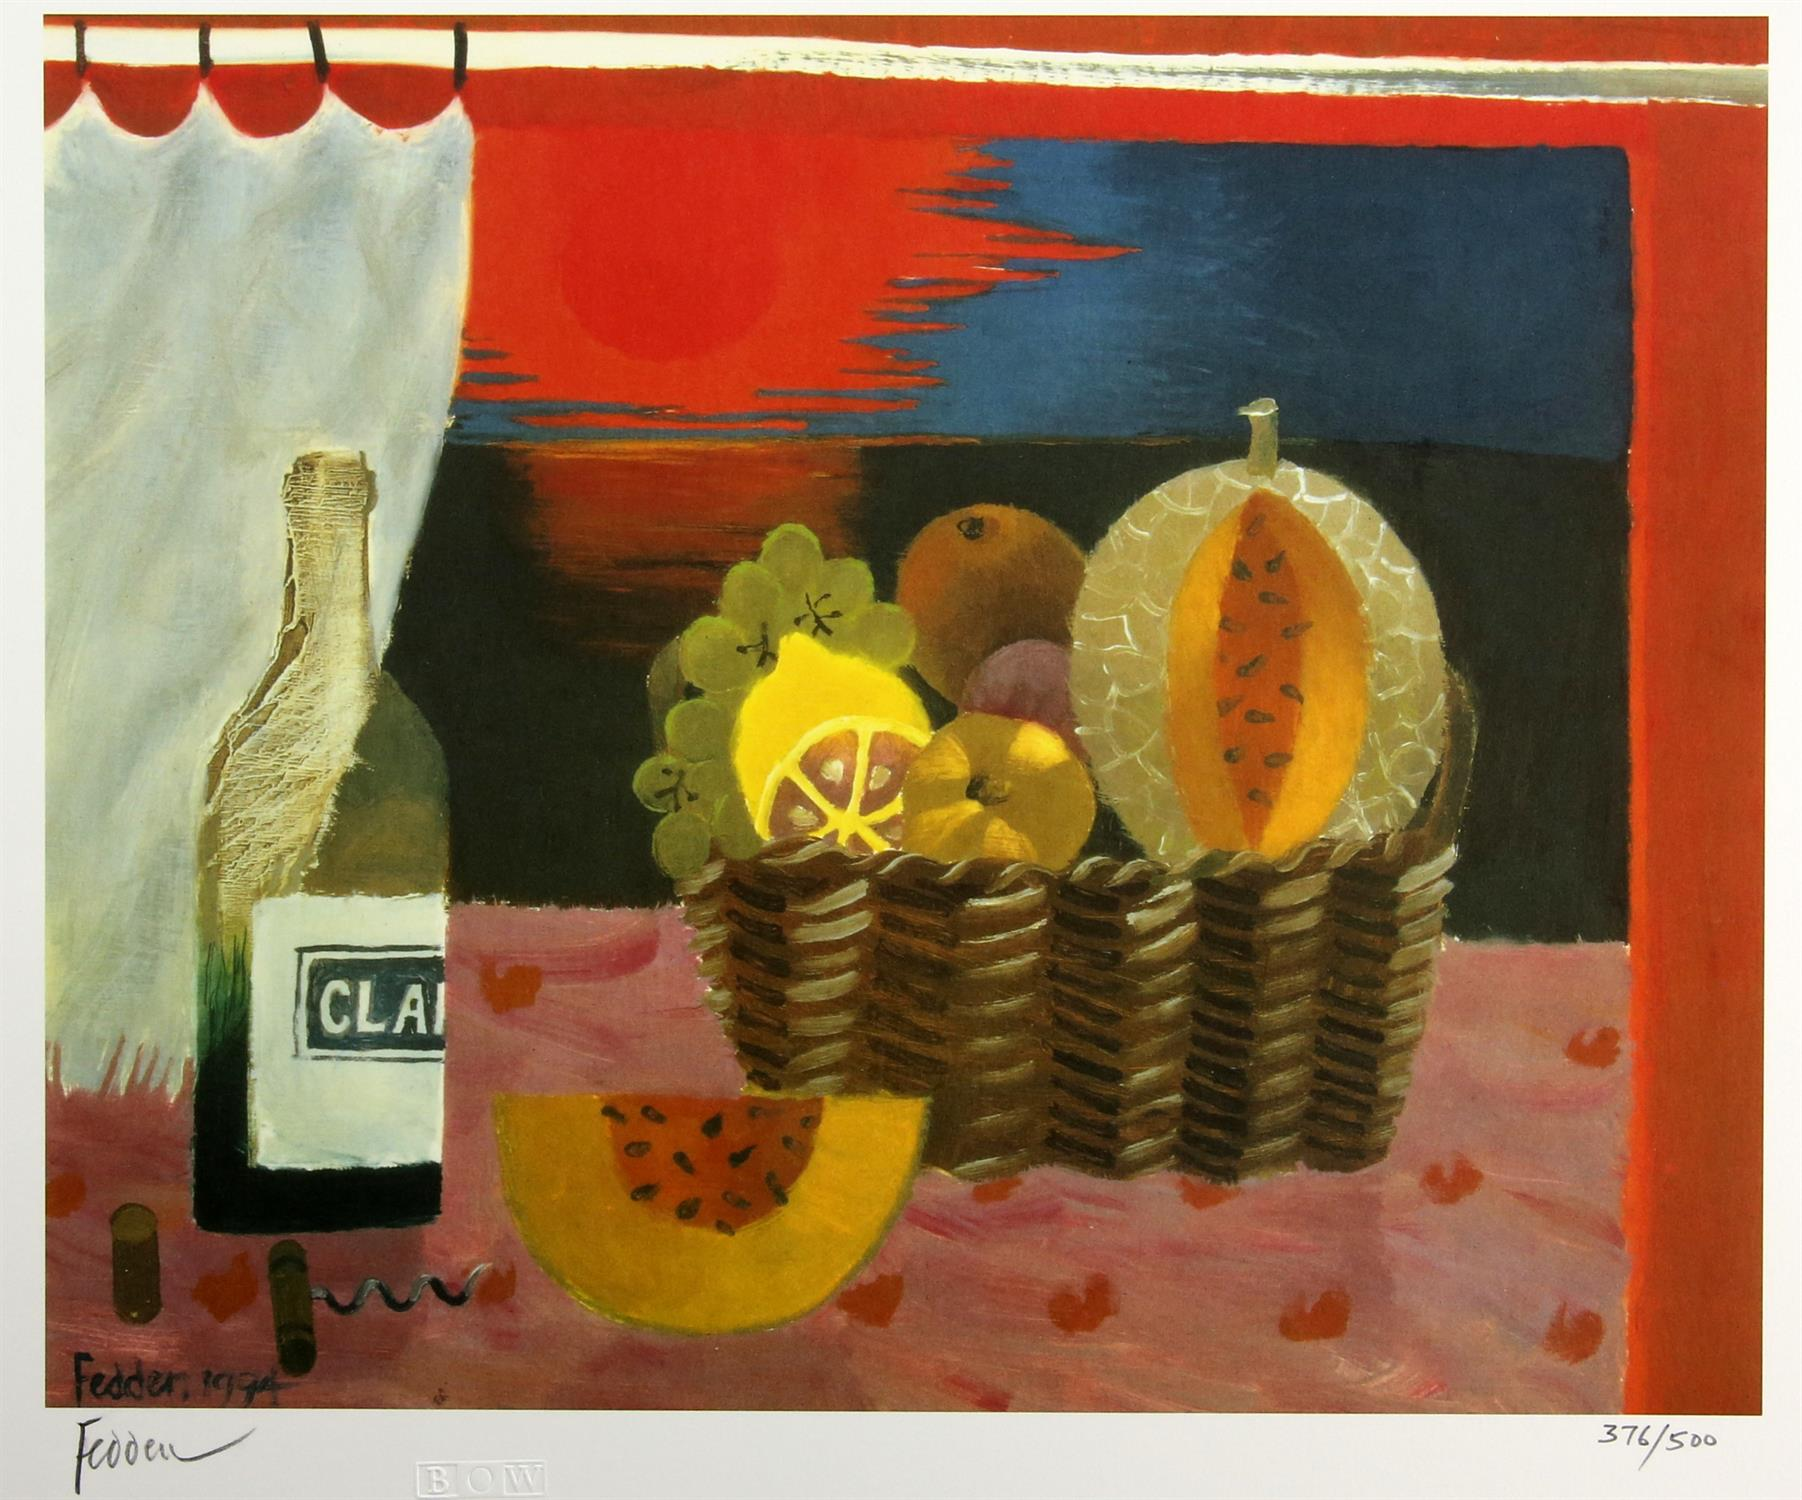 Mary Fedden (British, 1915-2012), 'Red Sunset', lithograph, signed and numbered 376/500 in pencil